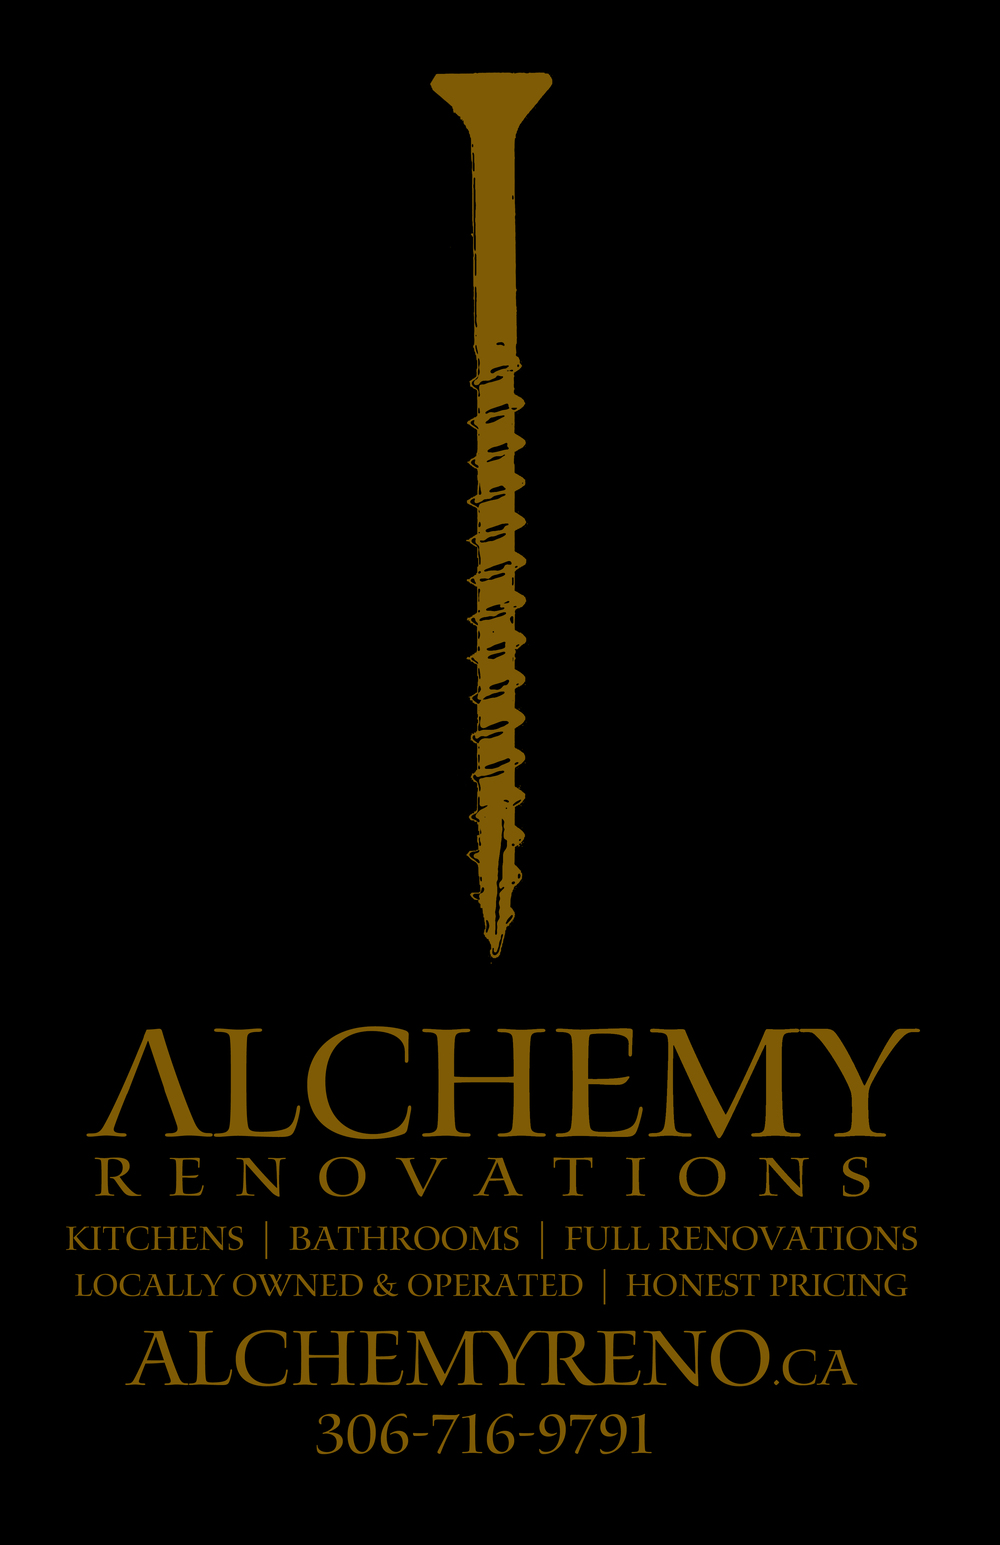 Alchemy Renovation Saskatoon, trusted contractor